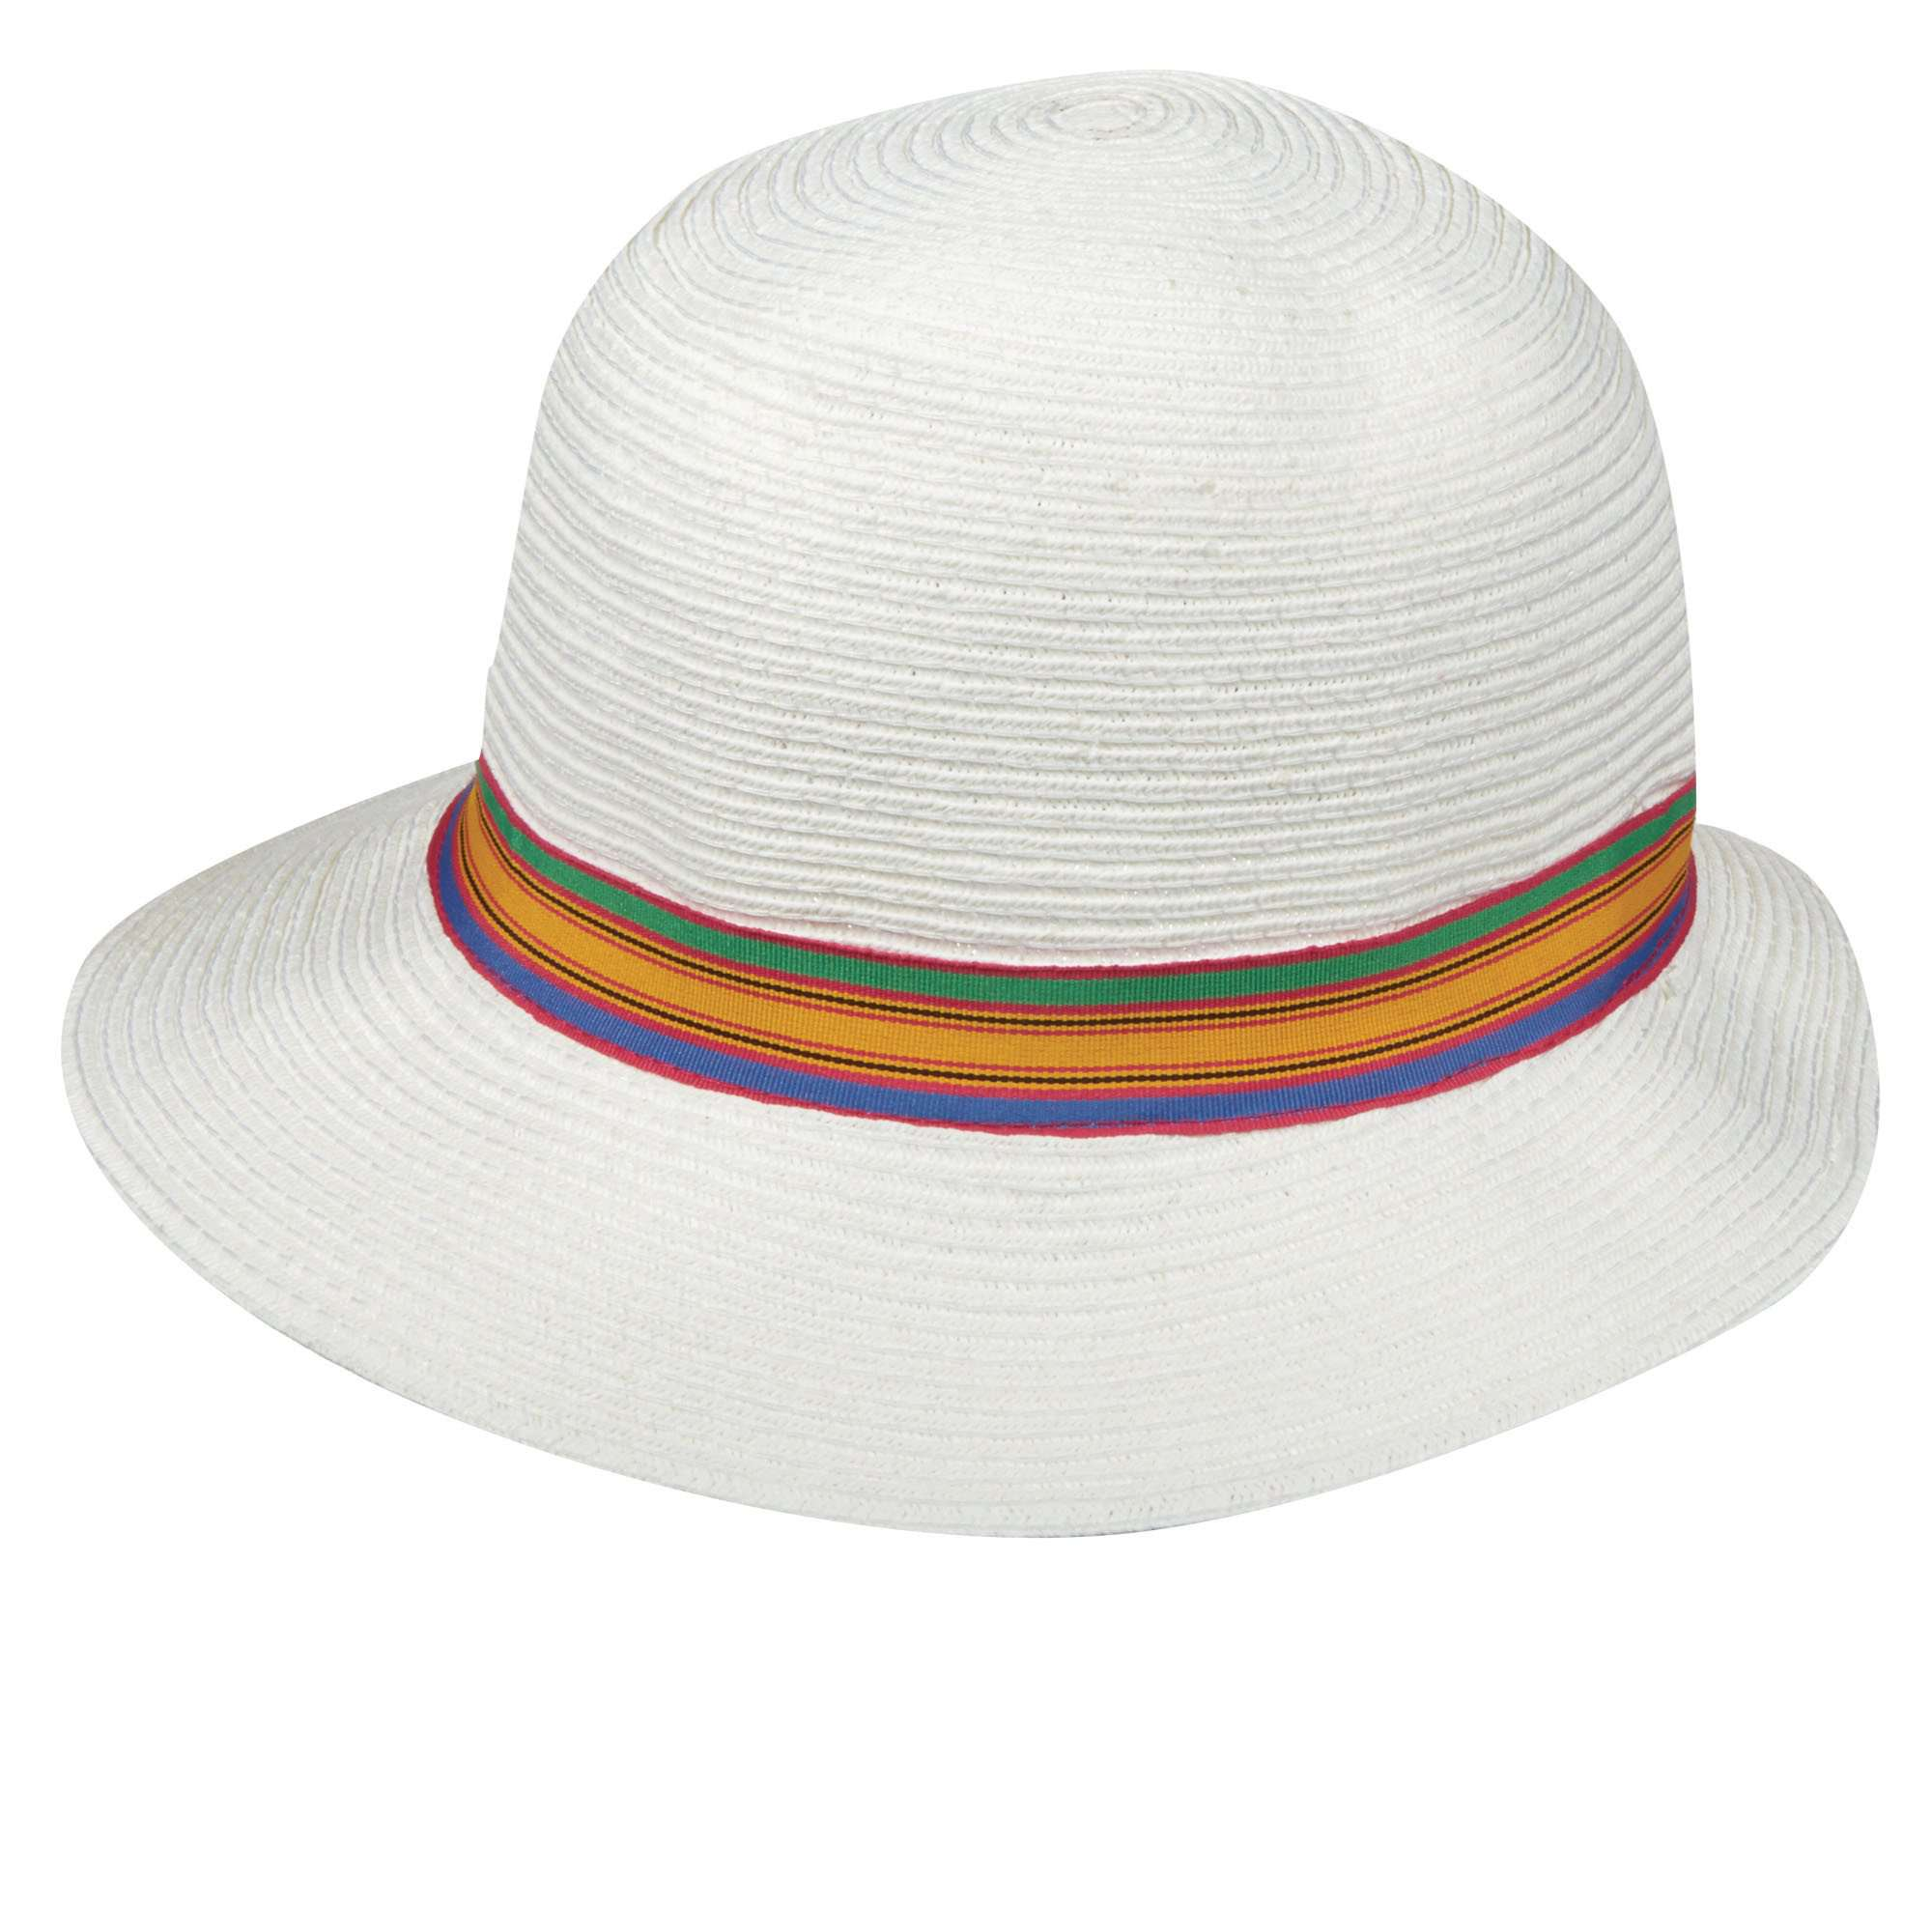 Tropical Trends Wavy Brim Cloche - SetarTrading Hats